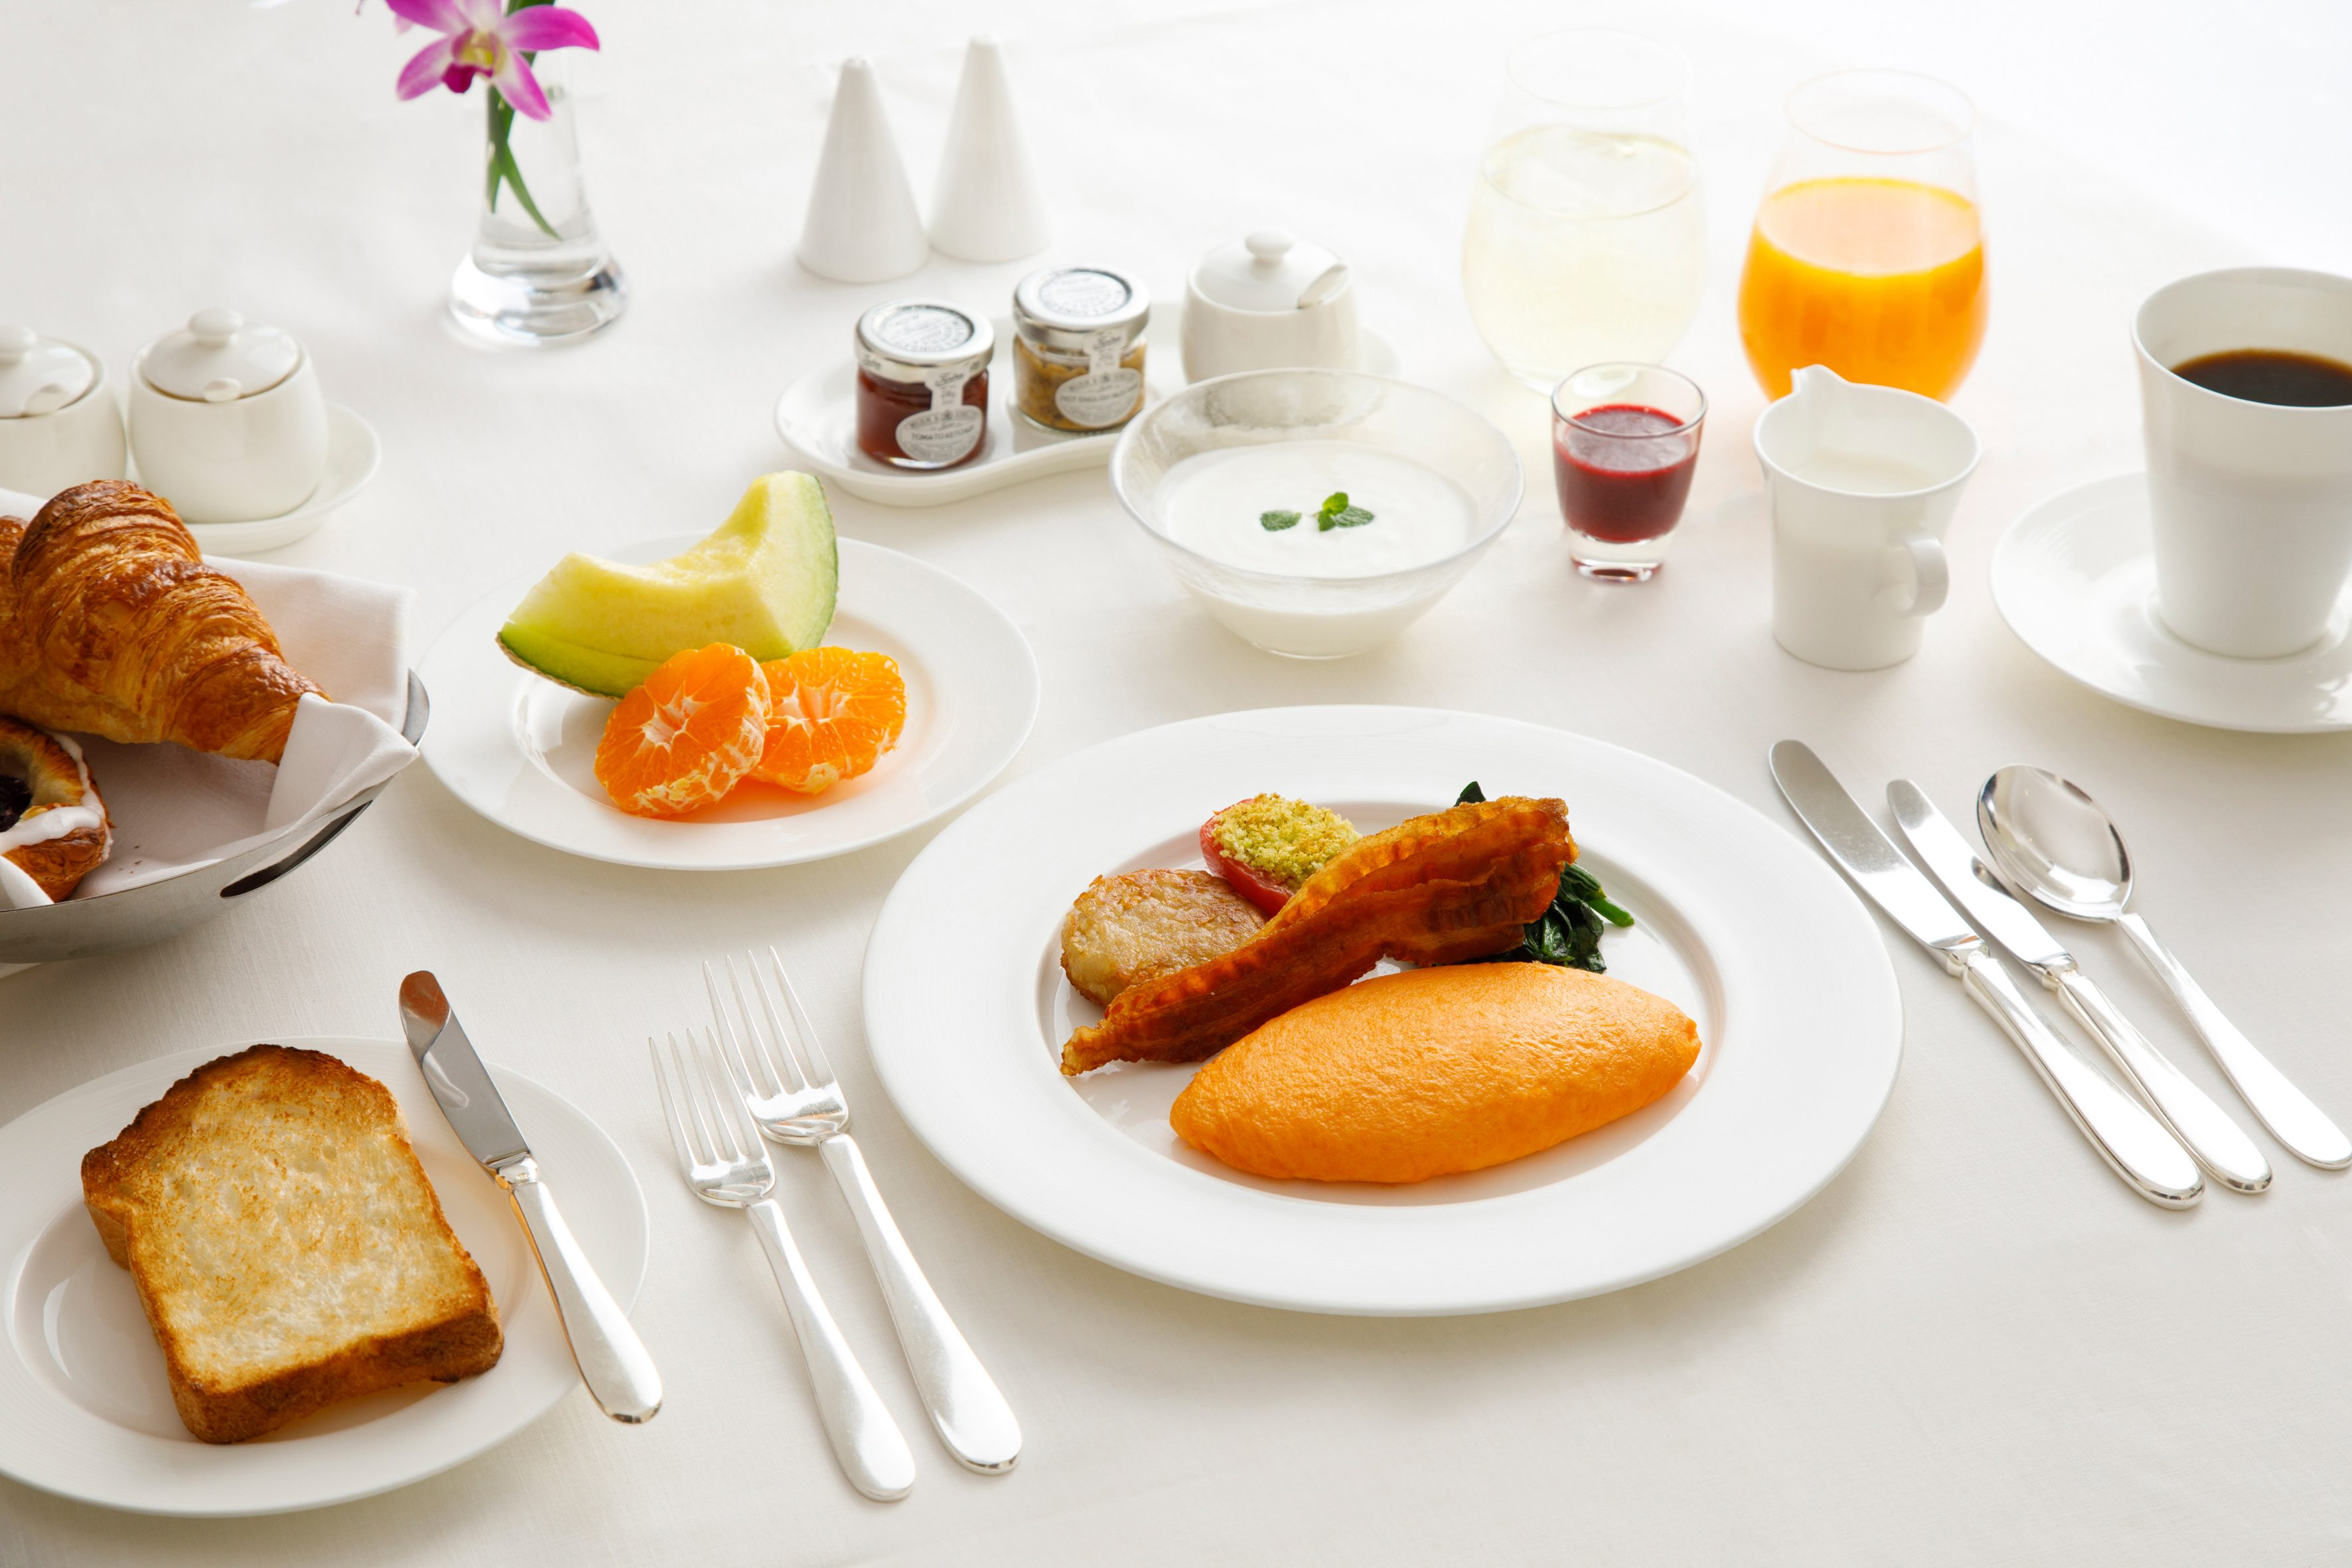 A breakfast table with orange juice, coffee, fresh fruit and toast